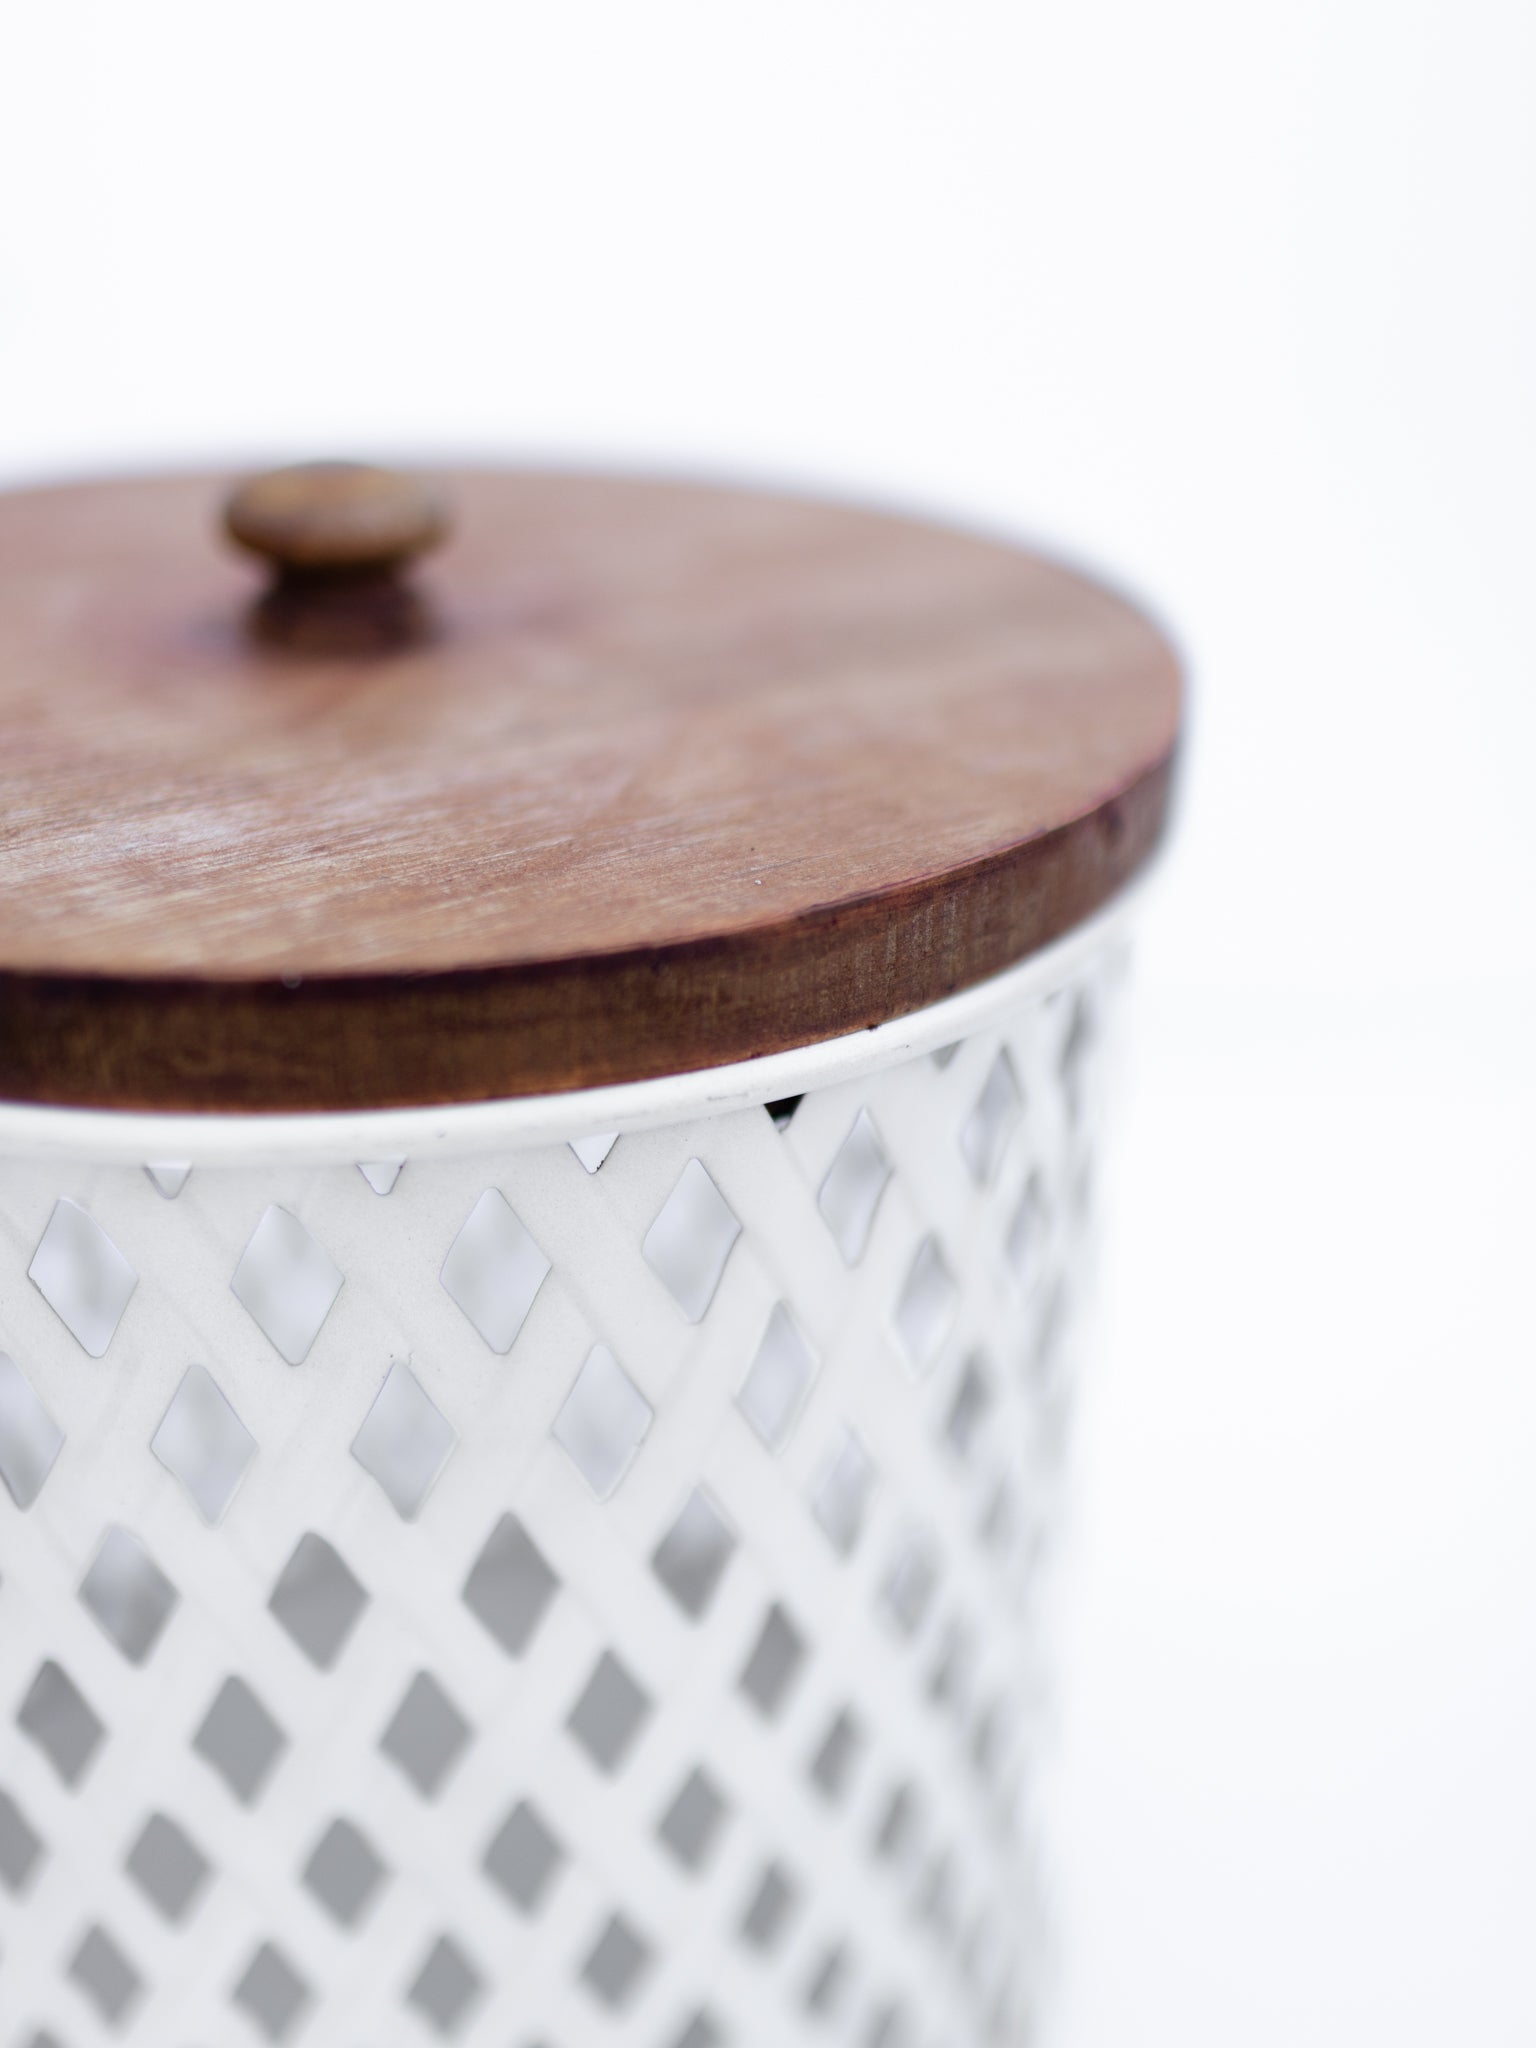 Metal Canister w/ Wood Lid